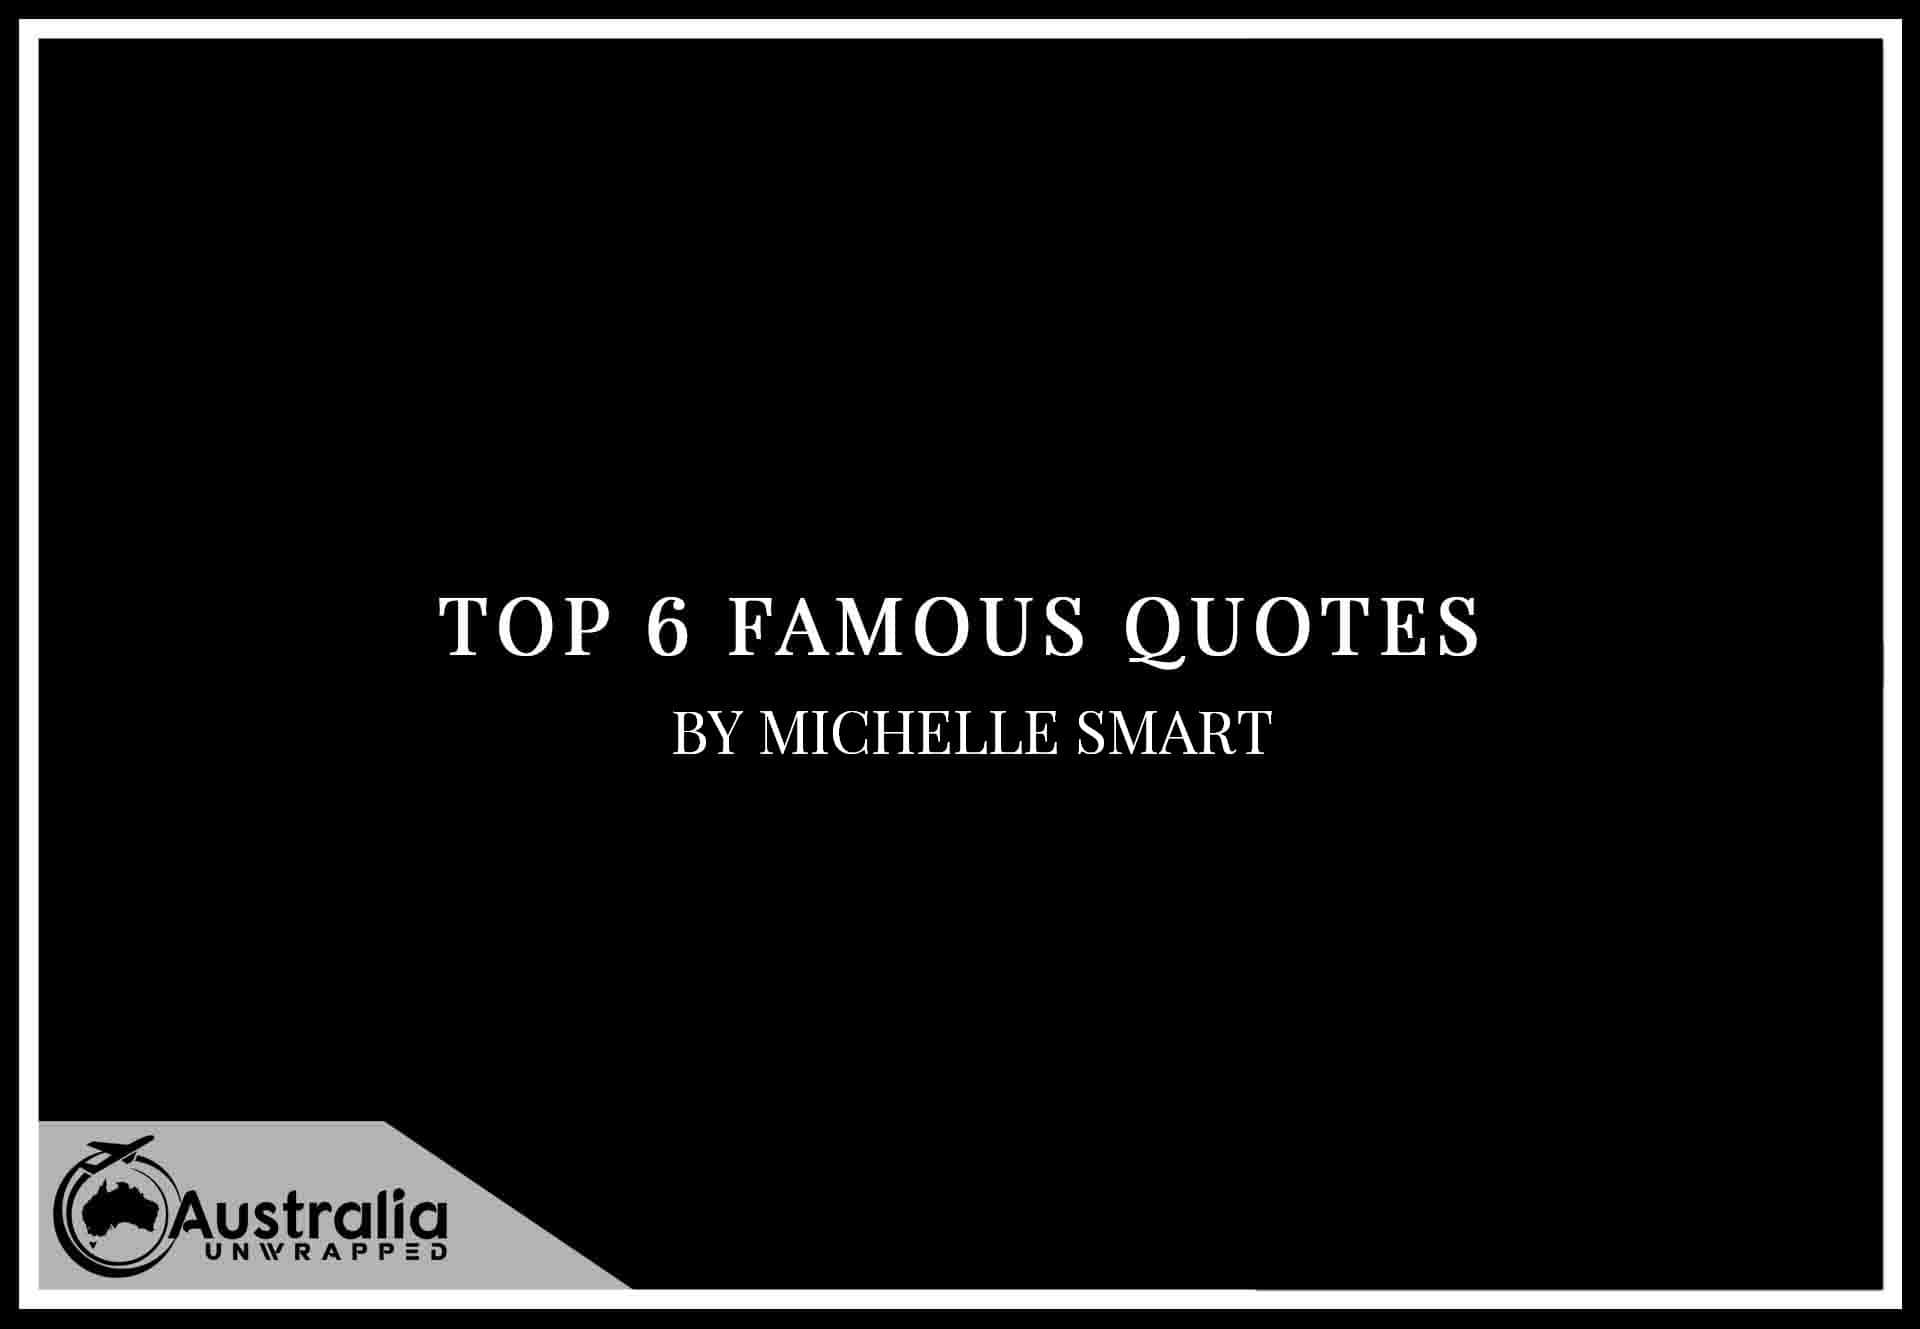 Top 6 Famous Quotes by Author Michelle Smart